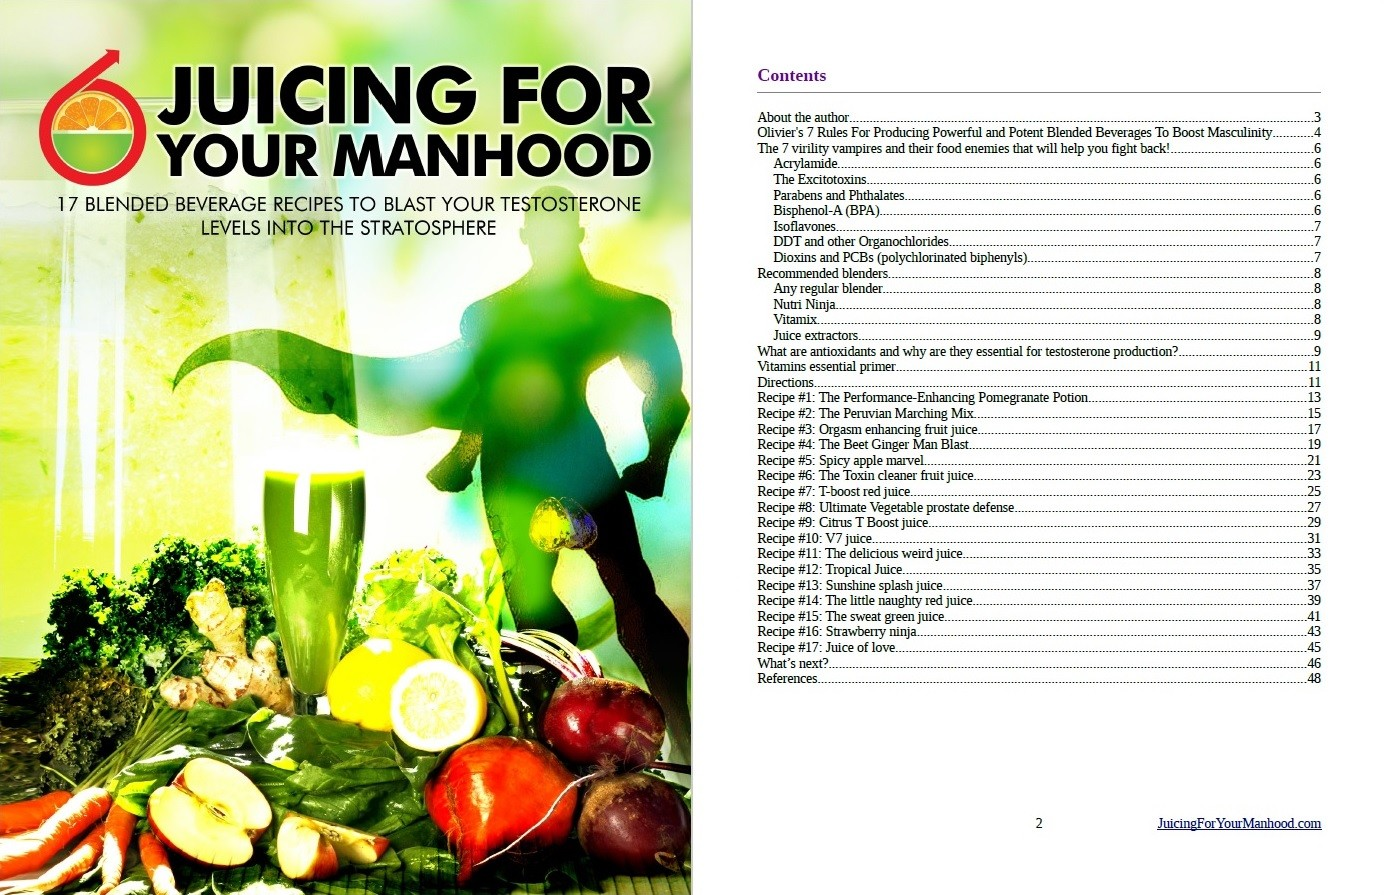 Juicing For Your Manhood Table of contents